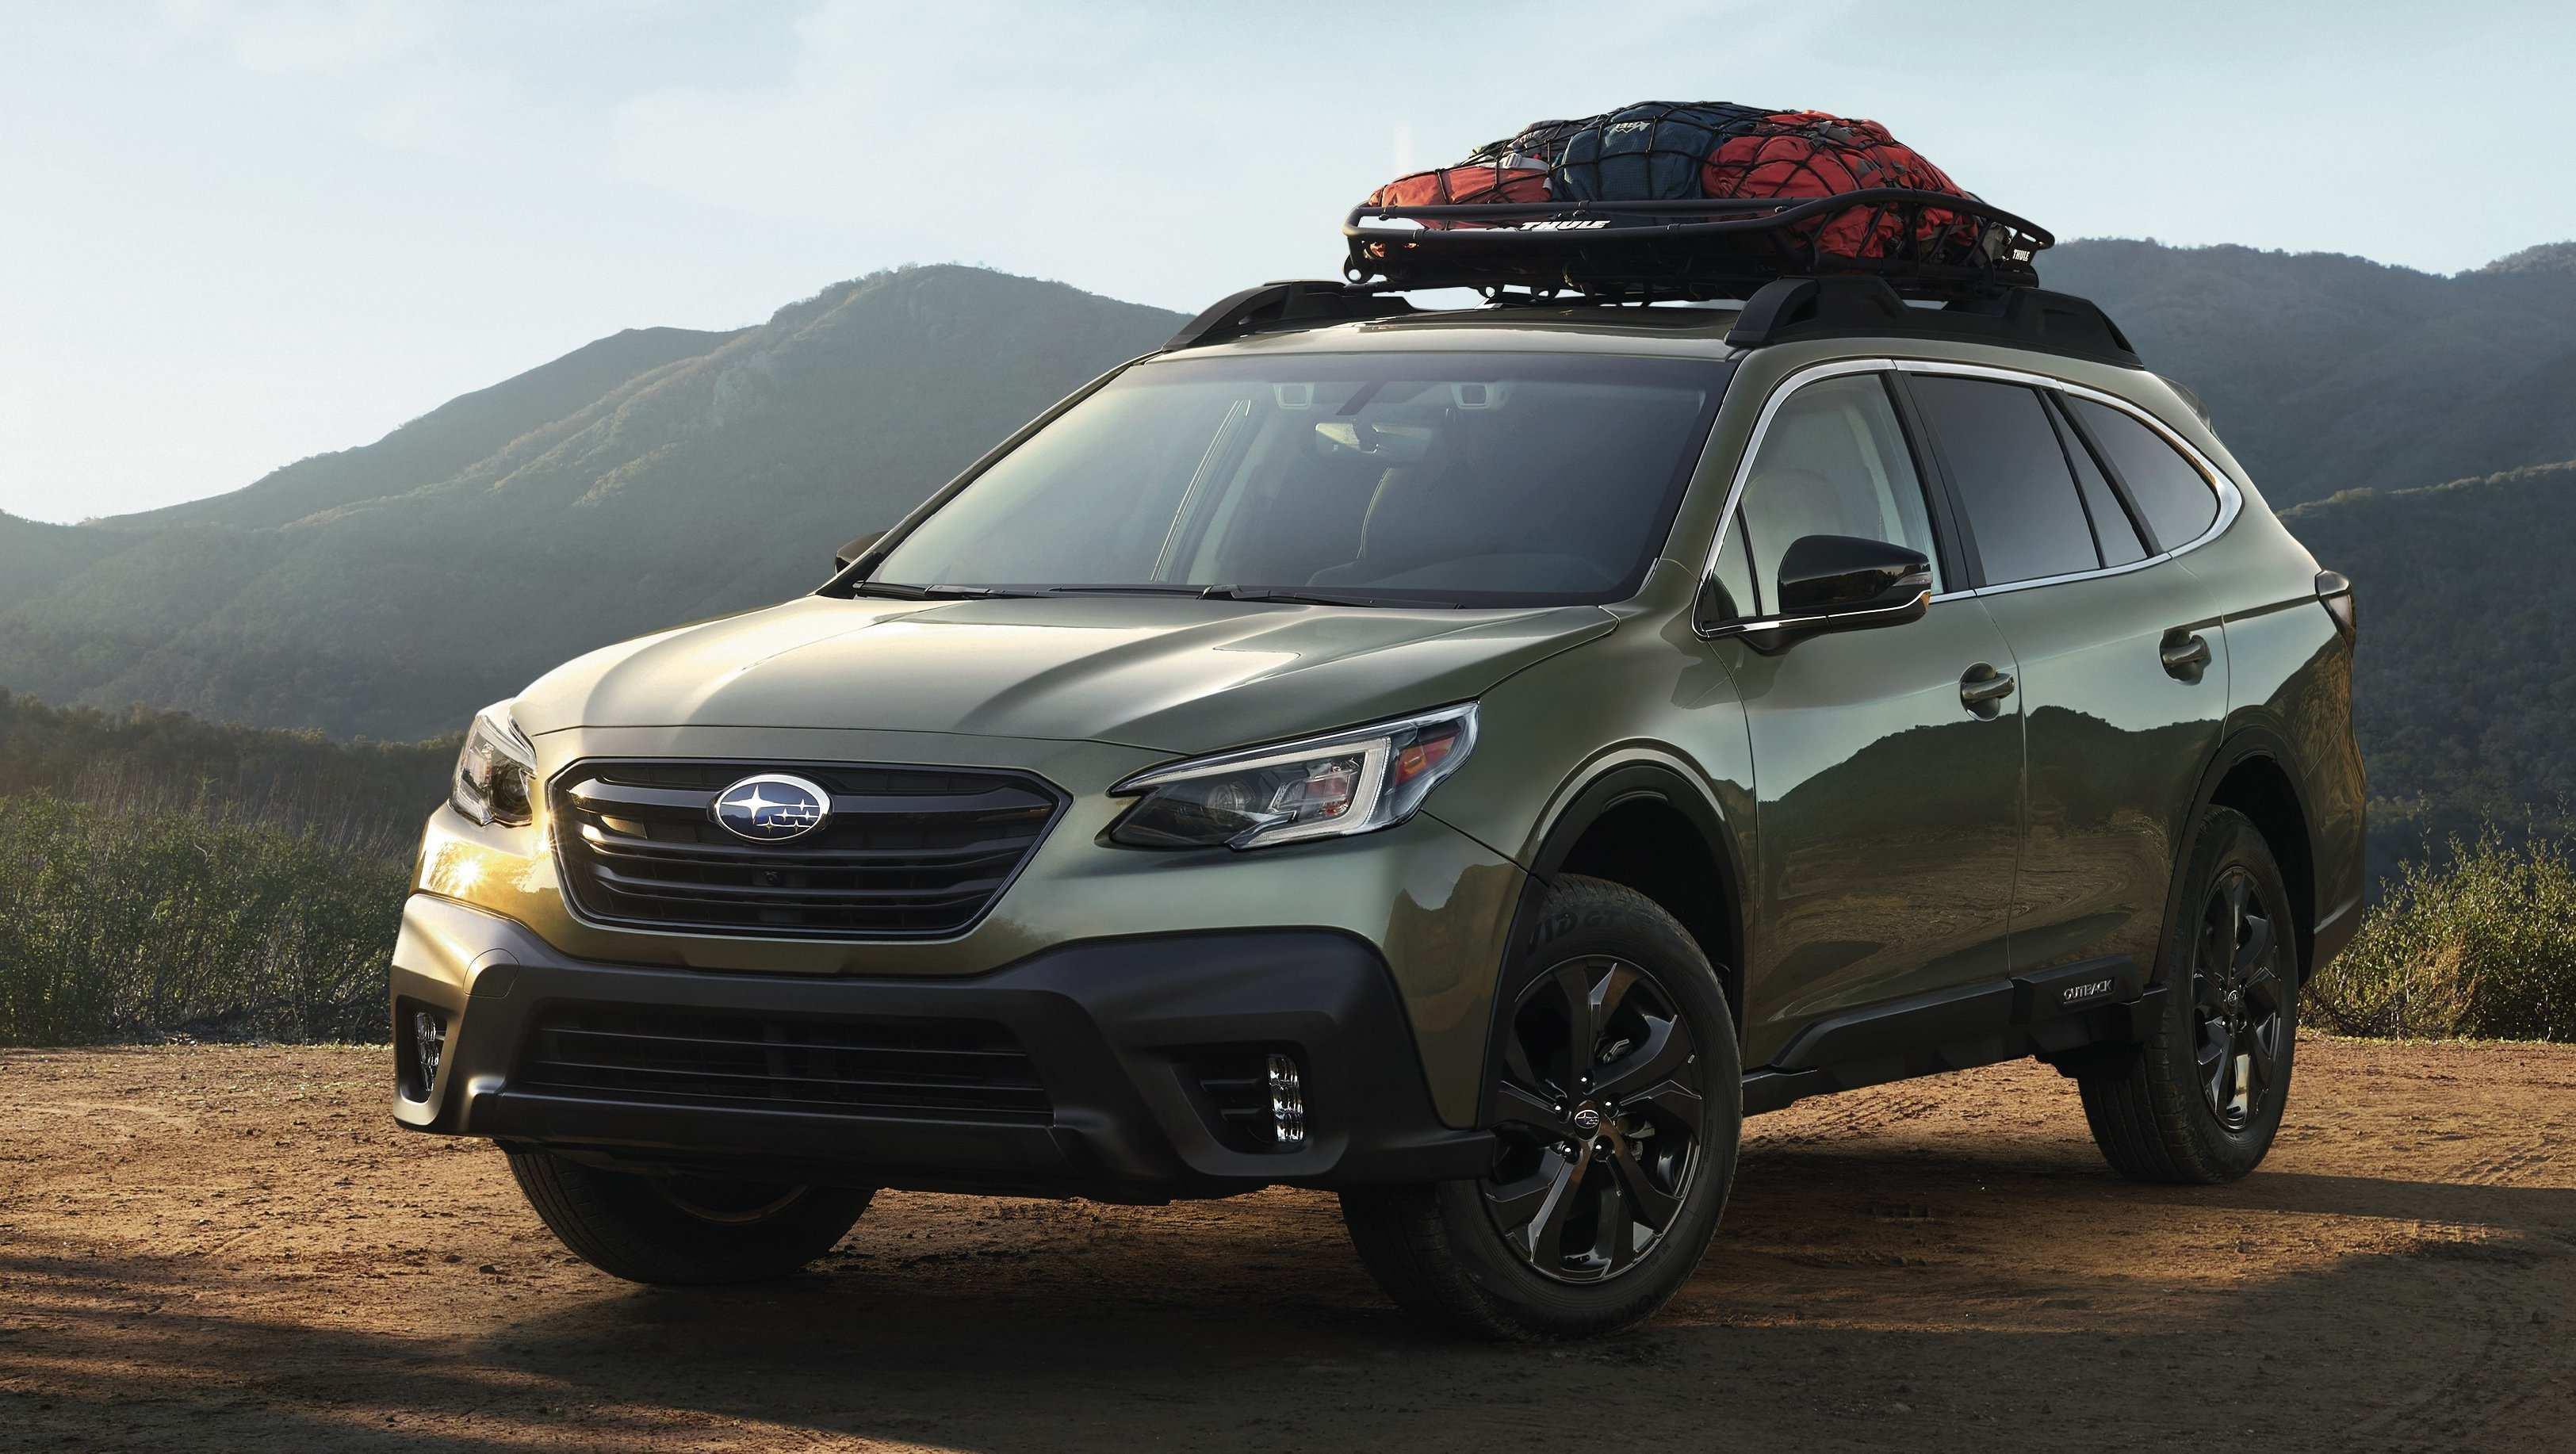 50 All New 2020 Subaru Outback Availability Model with 2020 Subaru Outback Availability